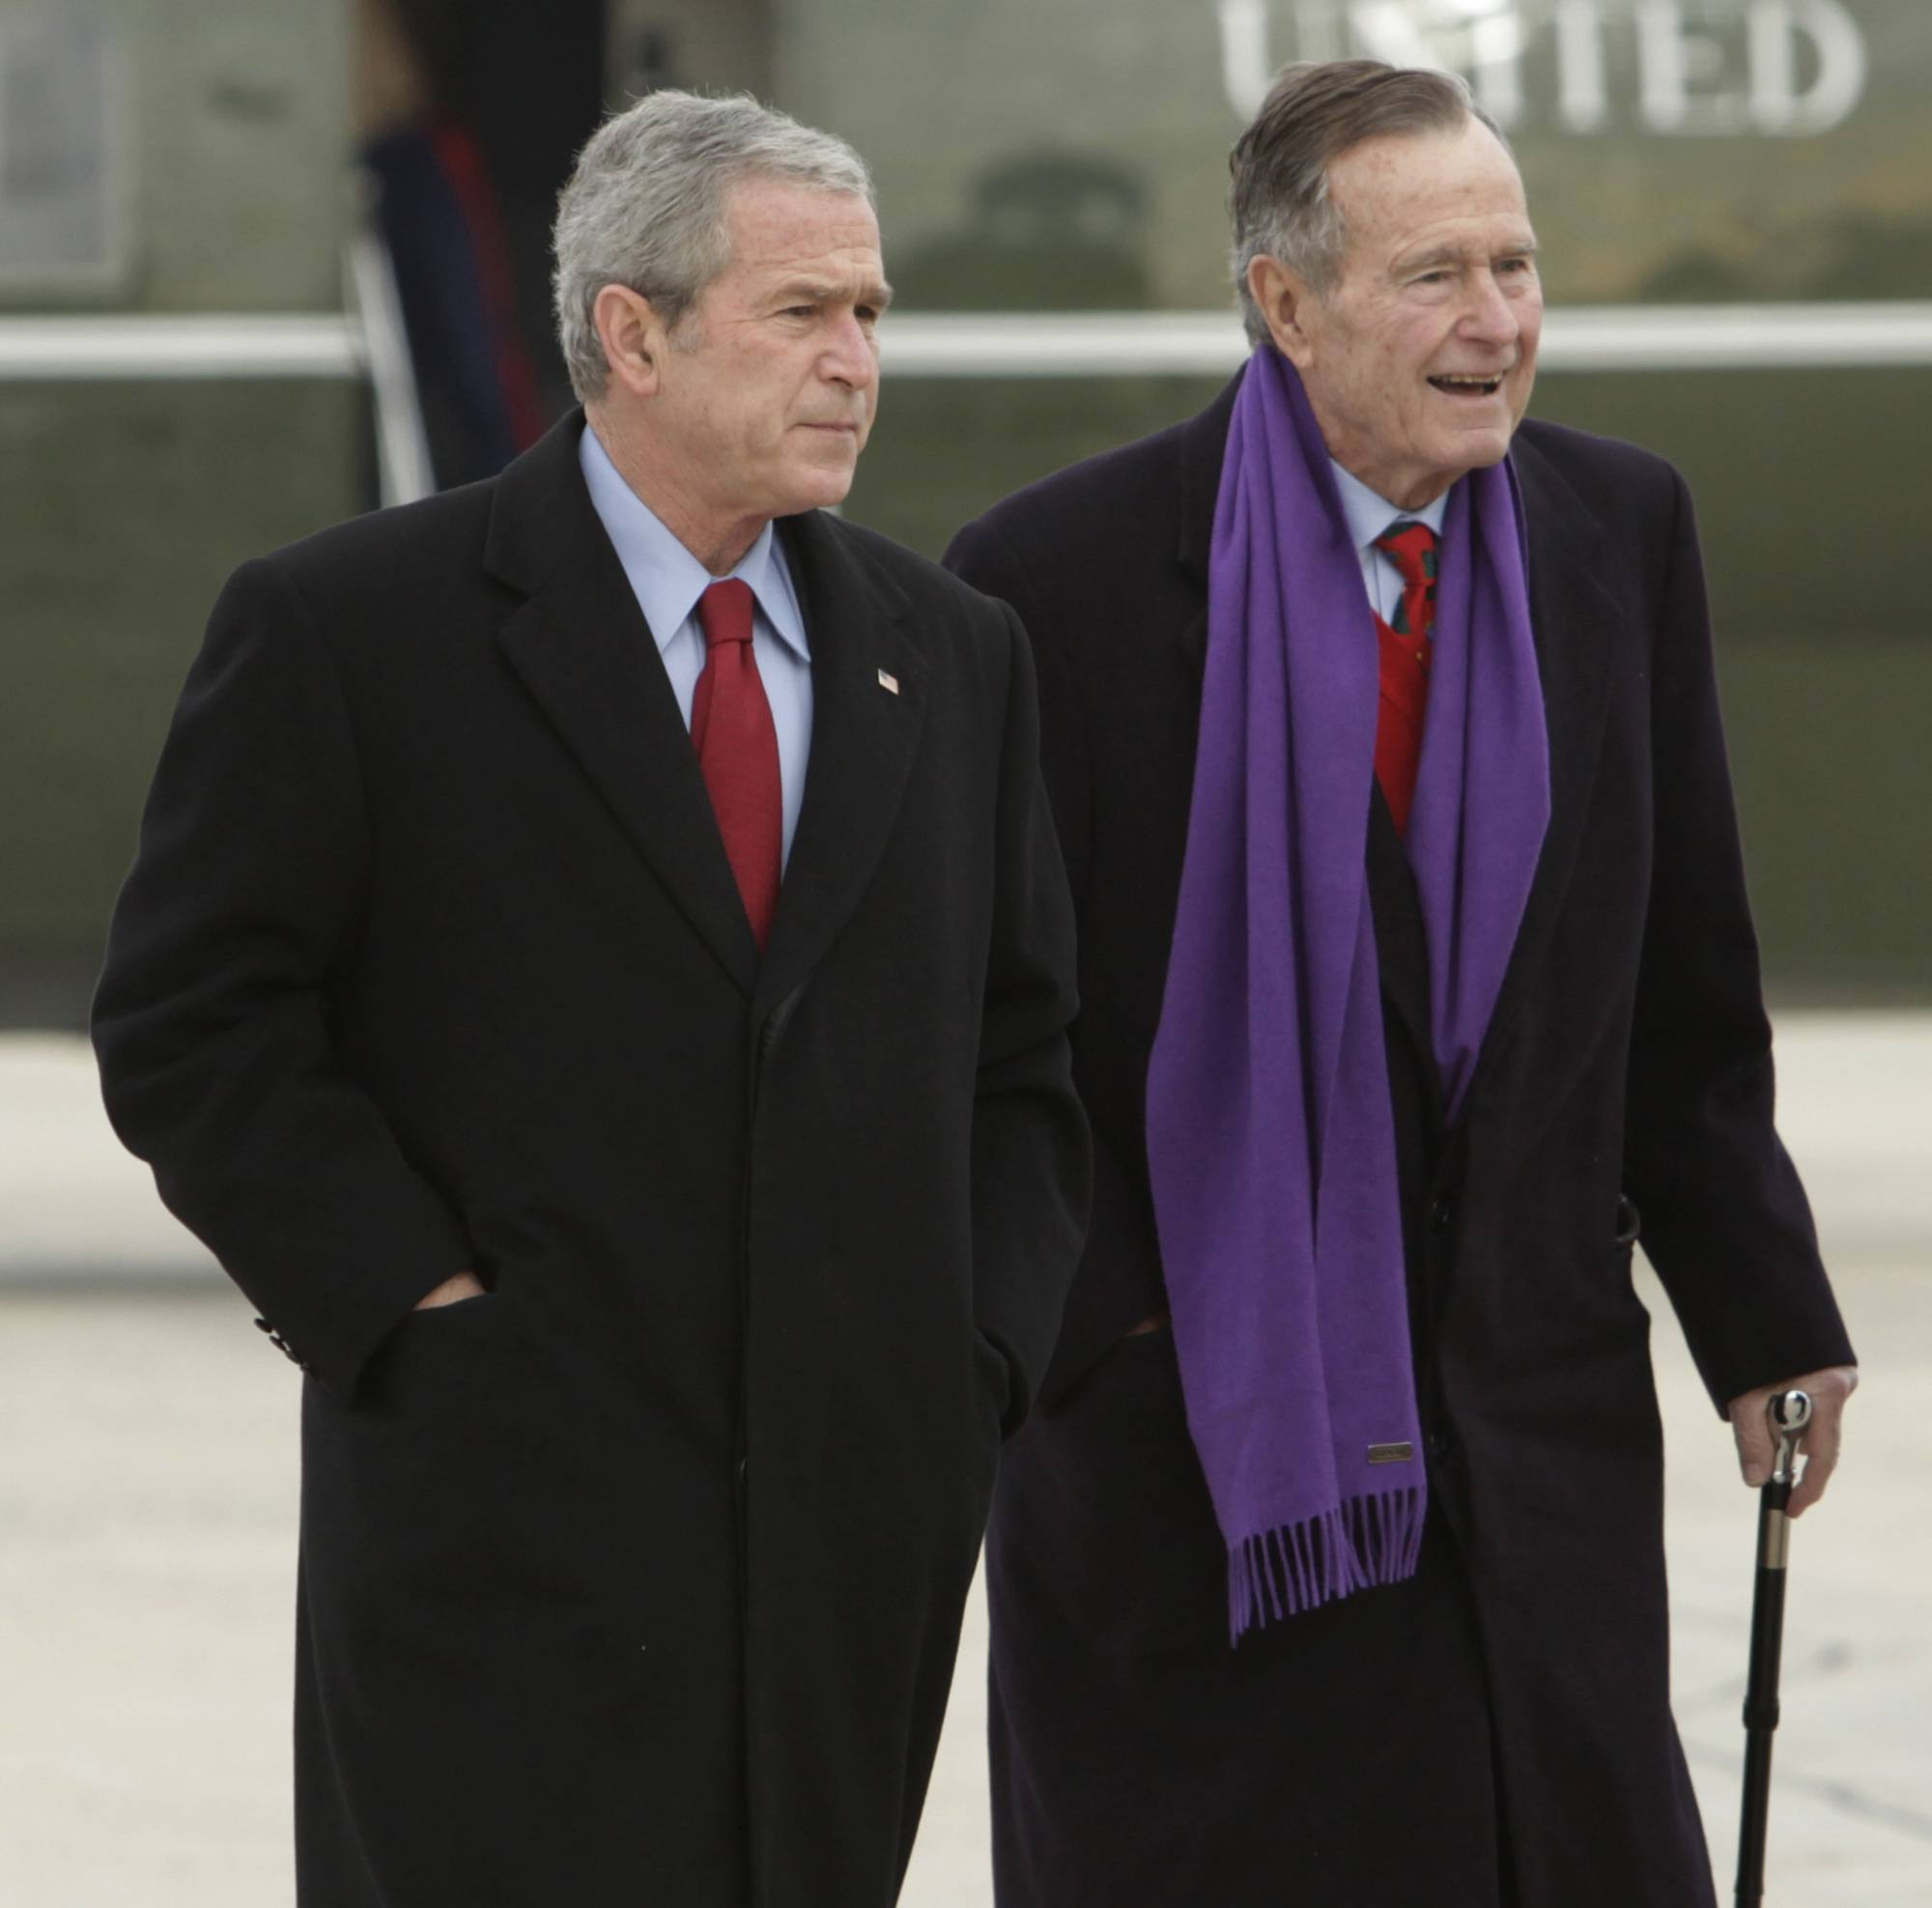 Facts Matter: Quote long attributed to George H.W. Bush is fake